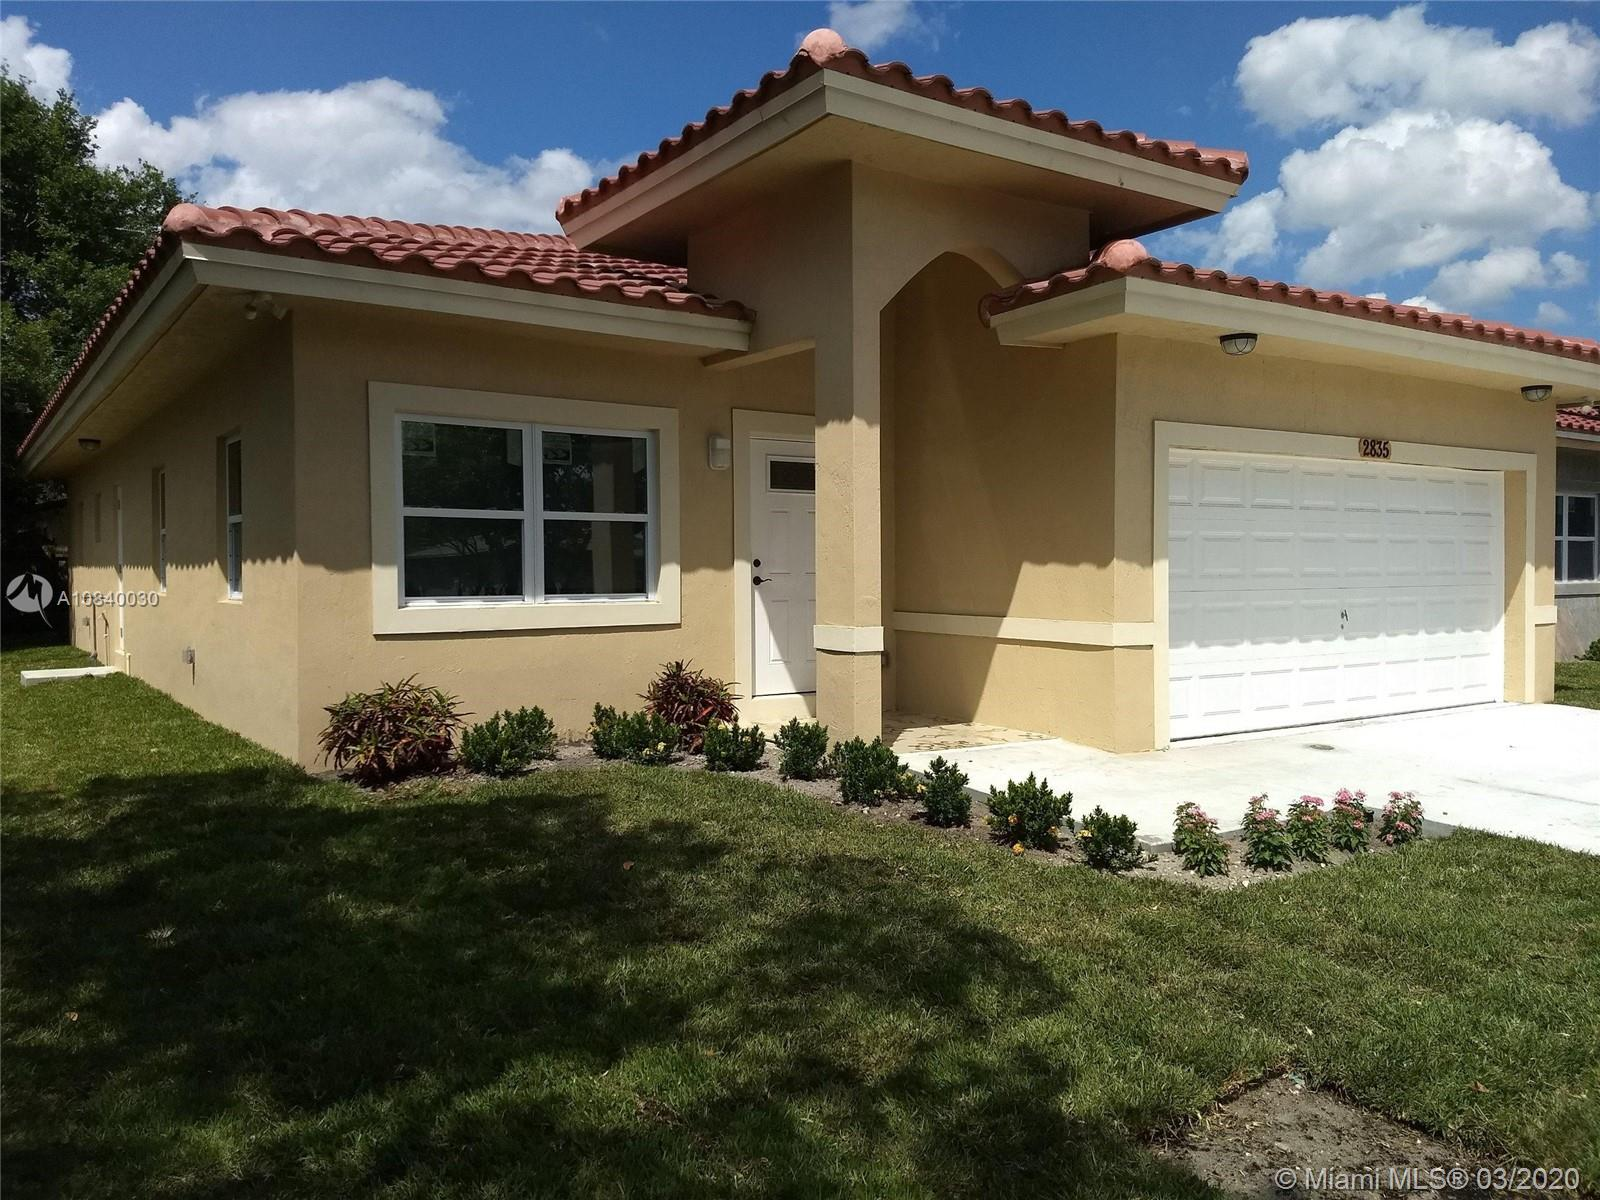 """brand new construction,3 bedrooms,2 baths,huge living room and dining room,2 car garage,2030 square feet,9 foot ceilings,quartz kitchen counter with Stainless steel appliances,32"""" rectified ceramic tiles throughout entirehouse and much more!!"""